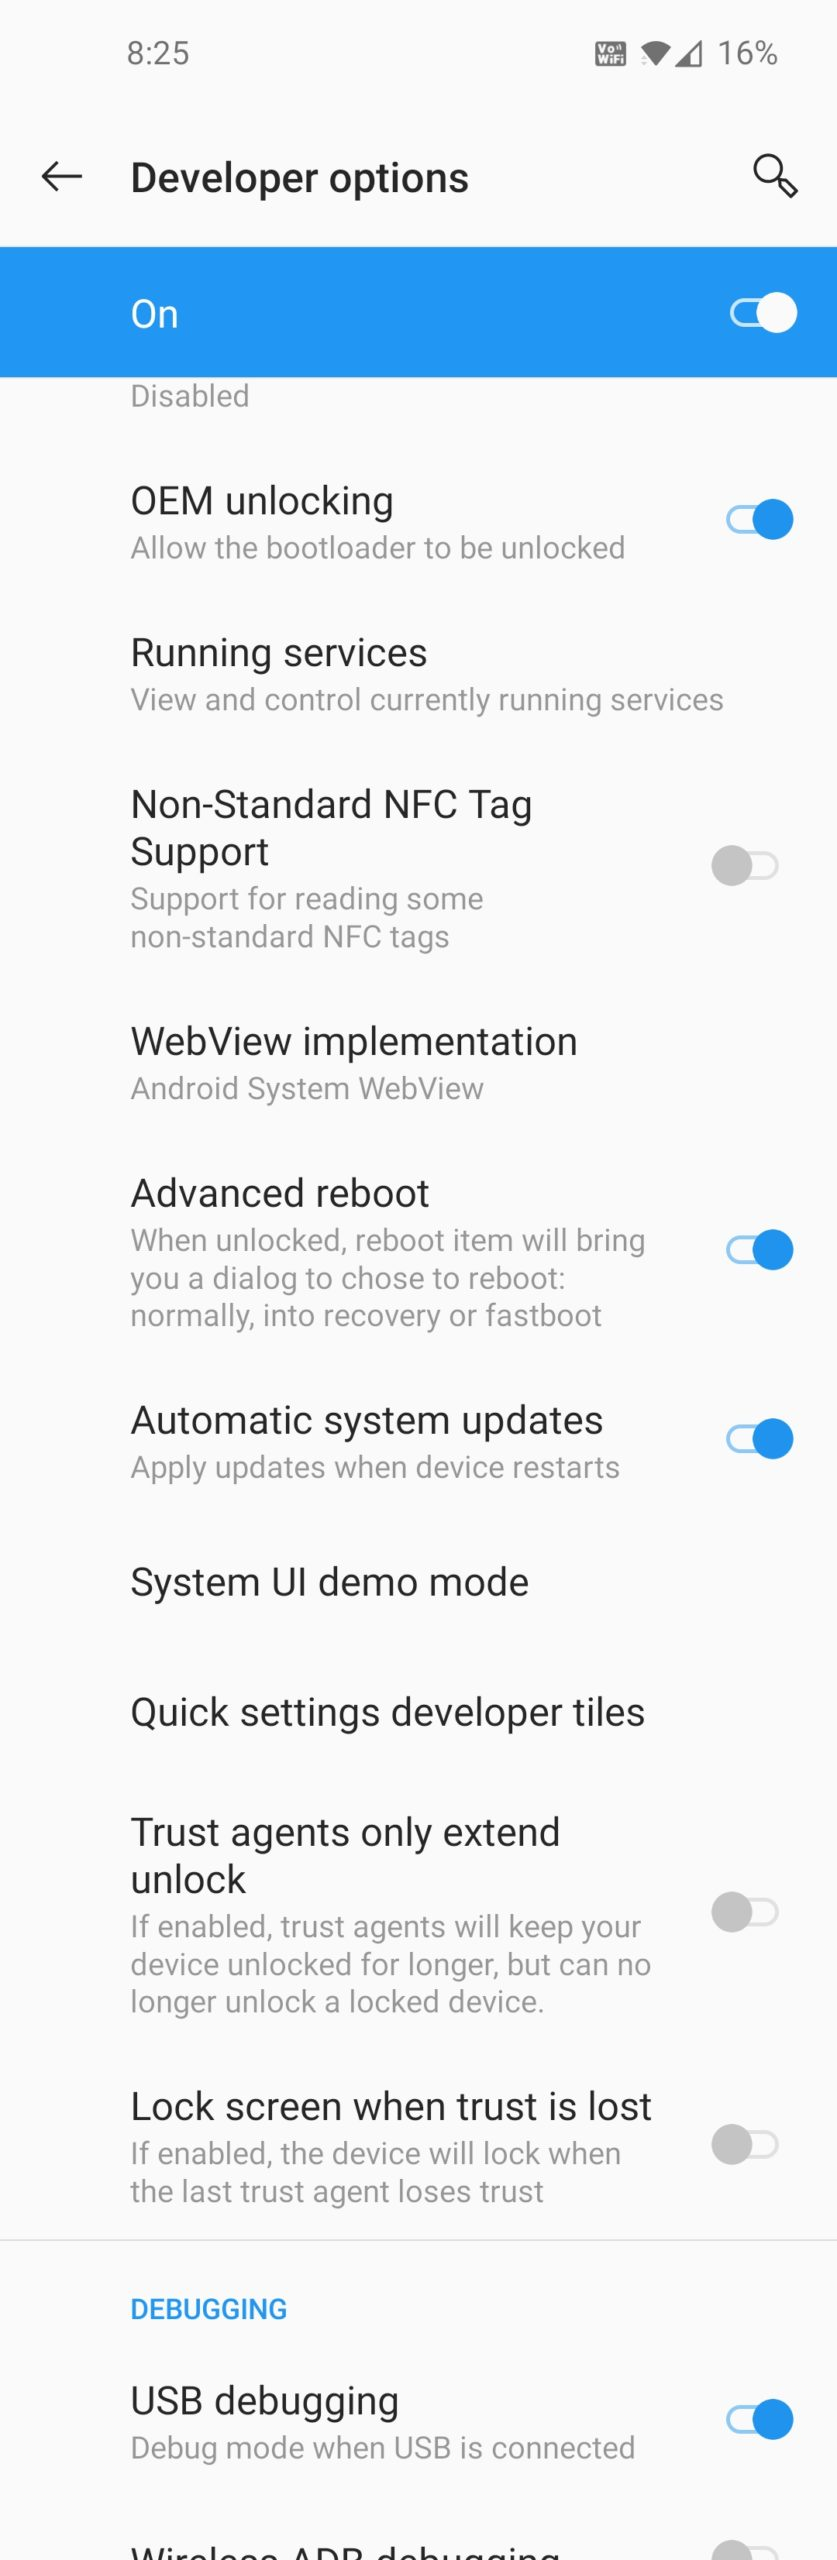 Root Oneplus 7 series running Android 10 based on Oxygen OS 10